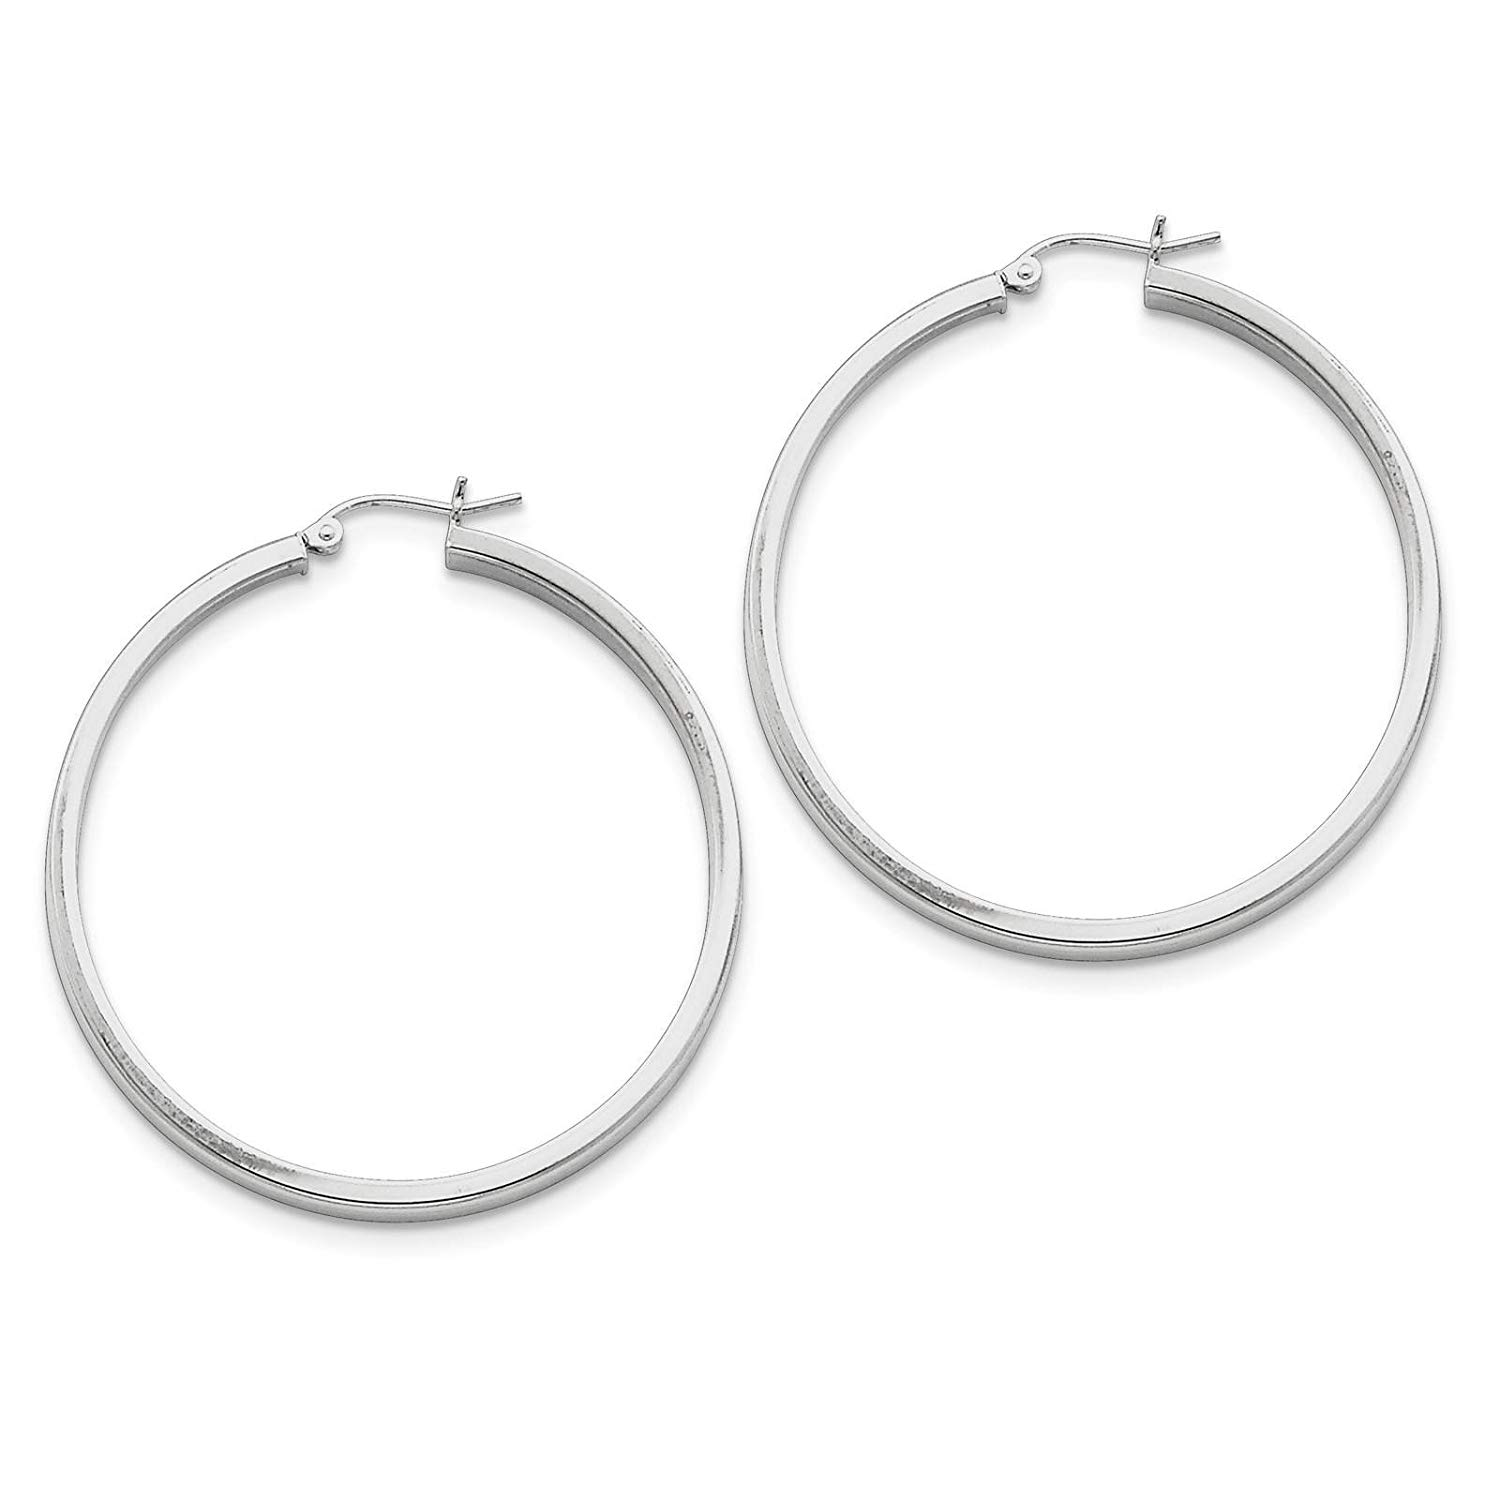 .925 Sterling Silver Rhodium-plated Polished Square-tube Hoop Earrings 3mm x 45mm